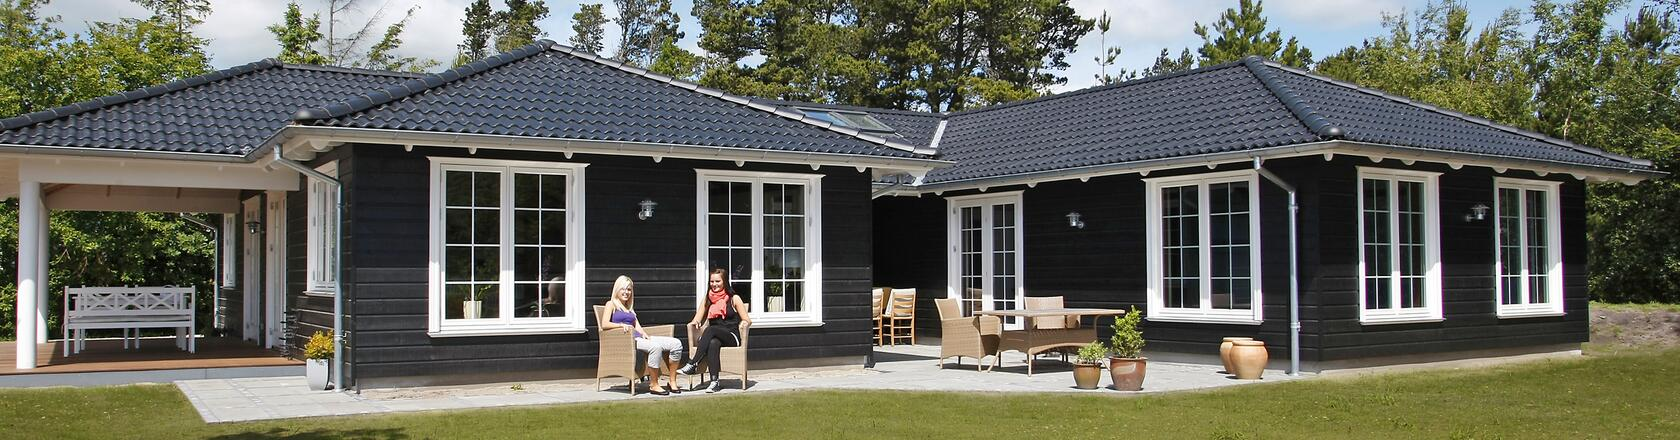 Ålbæk in Denmark - Rent a holiday home  with DanCenter